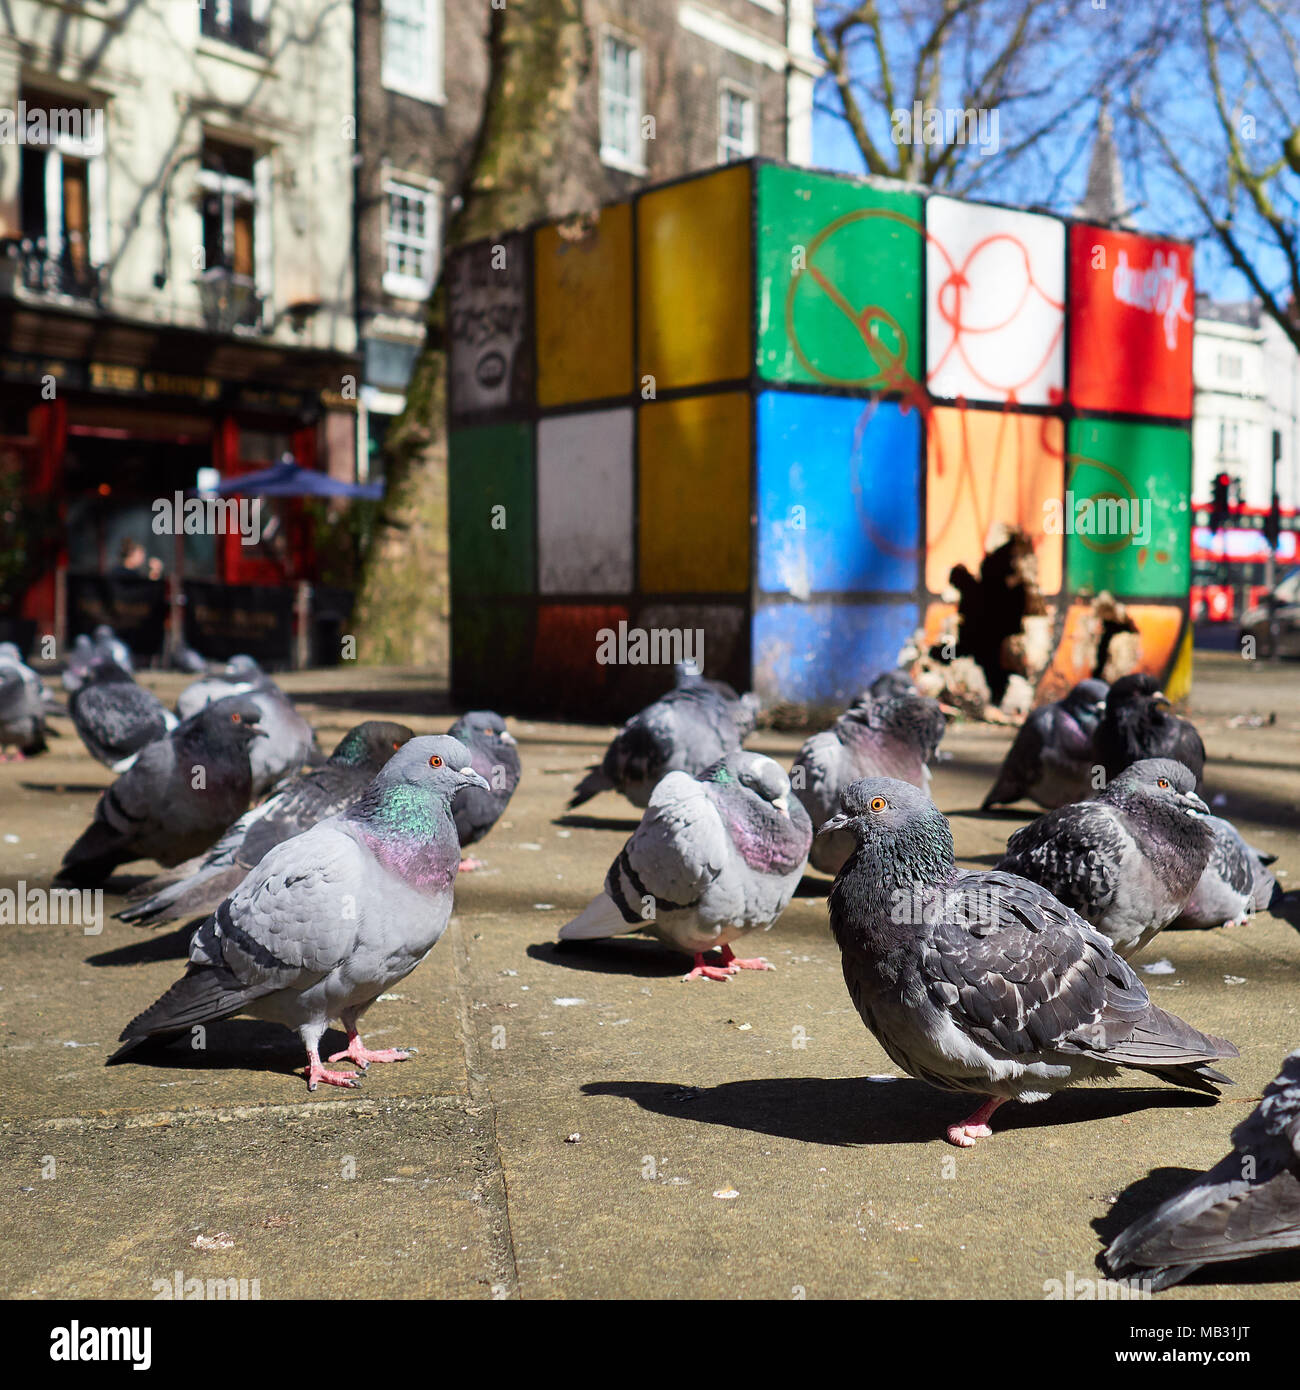 Pigeons in bright summer sun gathered in front of brightly coloured block sculpture which is partly broken and used as a nest, London 2018 - Stock Image